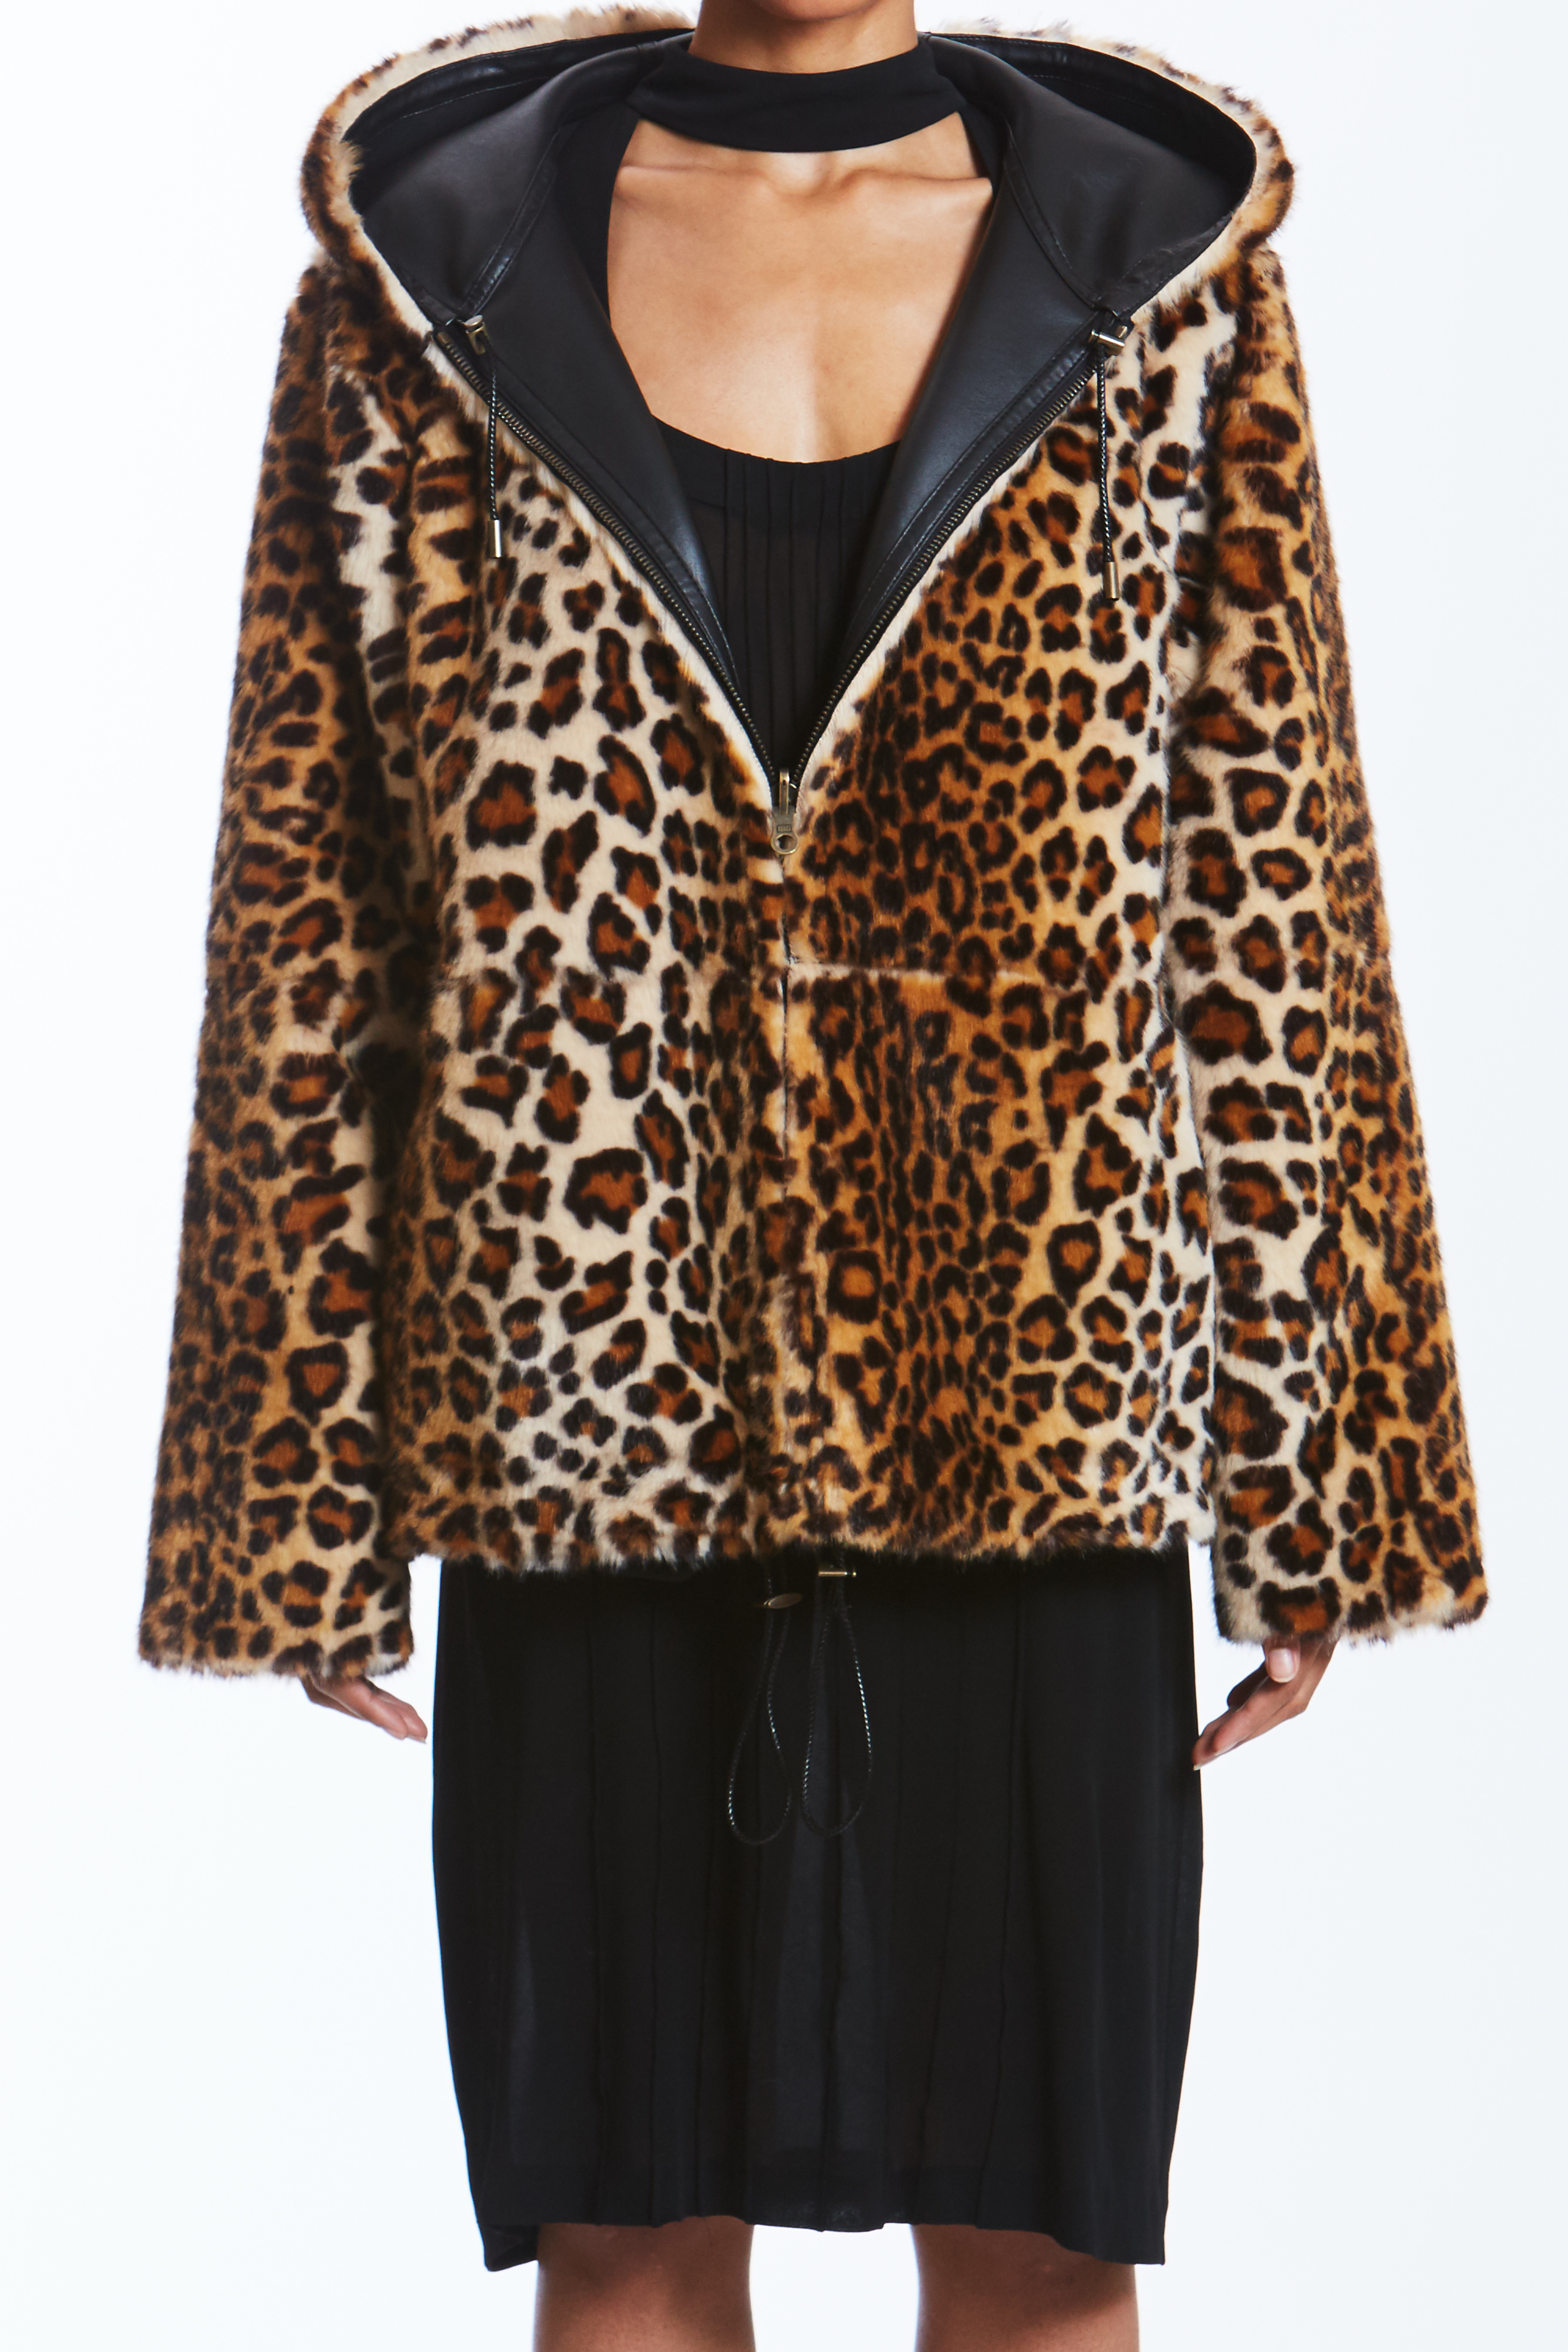 Sacha - Leopard by Maison Atia on curated-crowd.com